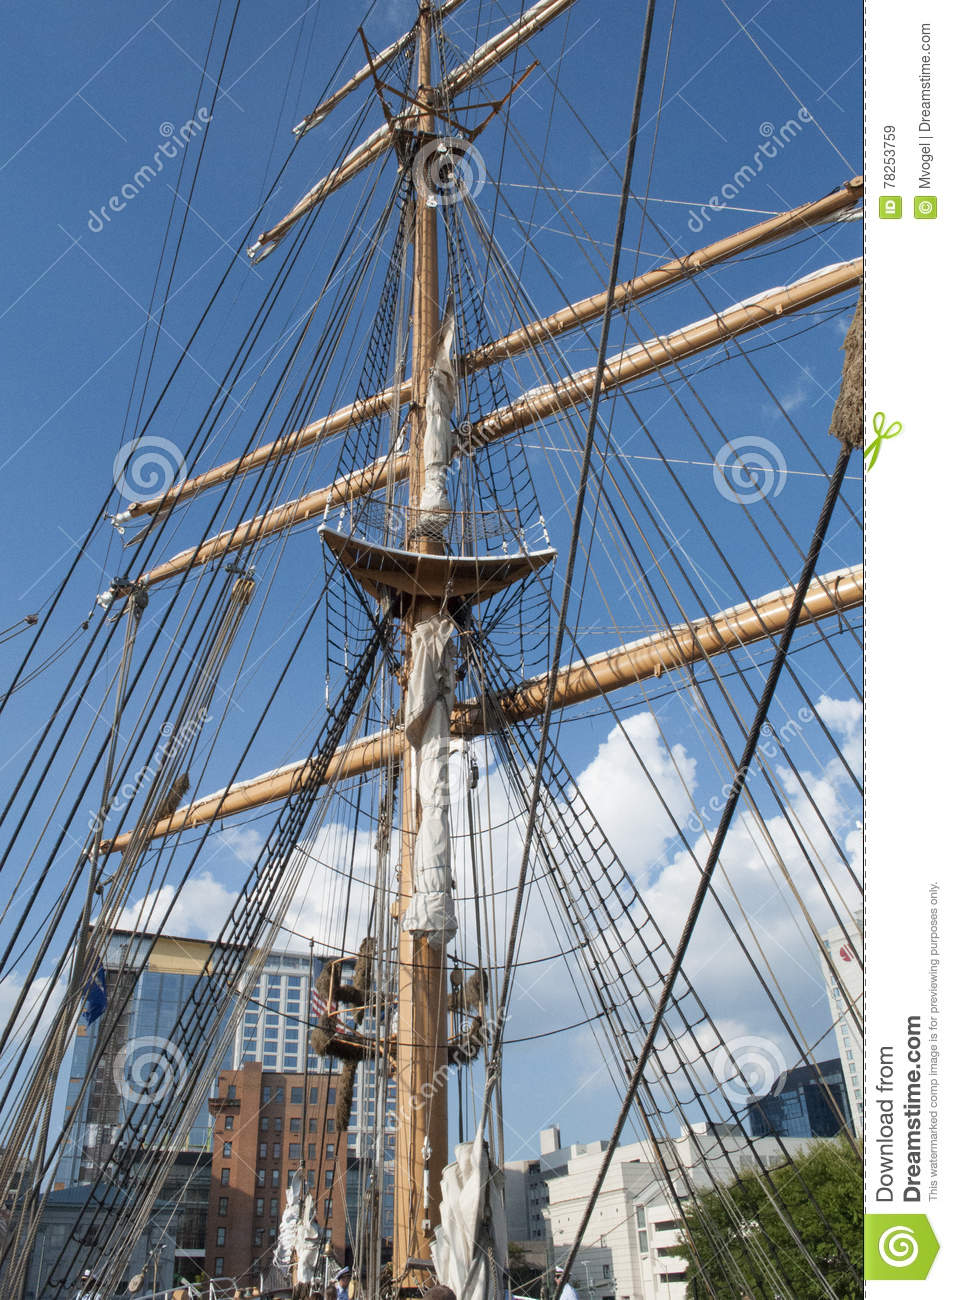 U.S. Coast Guard Tall Ship, The Eagle